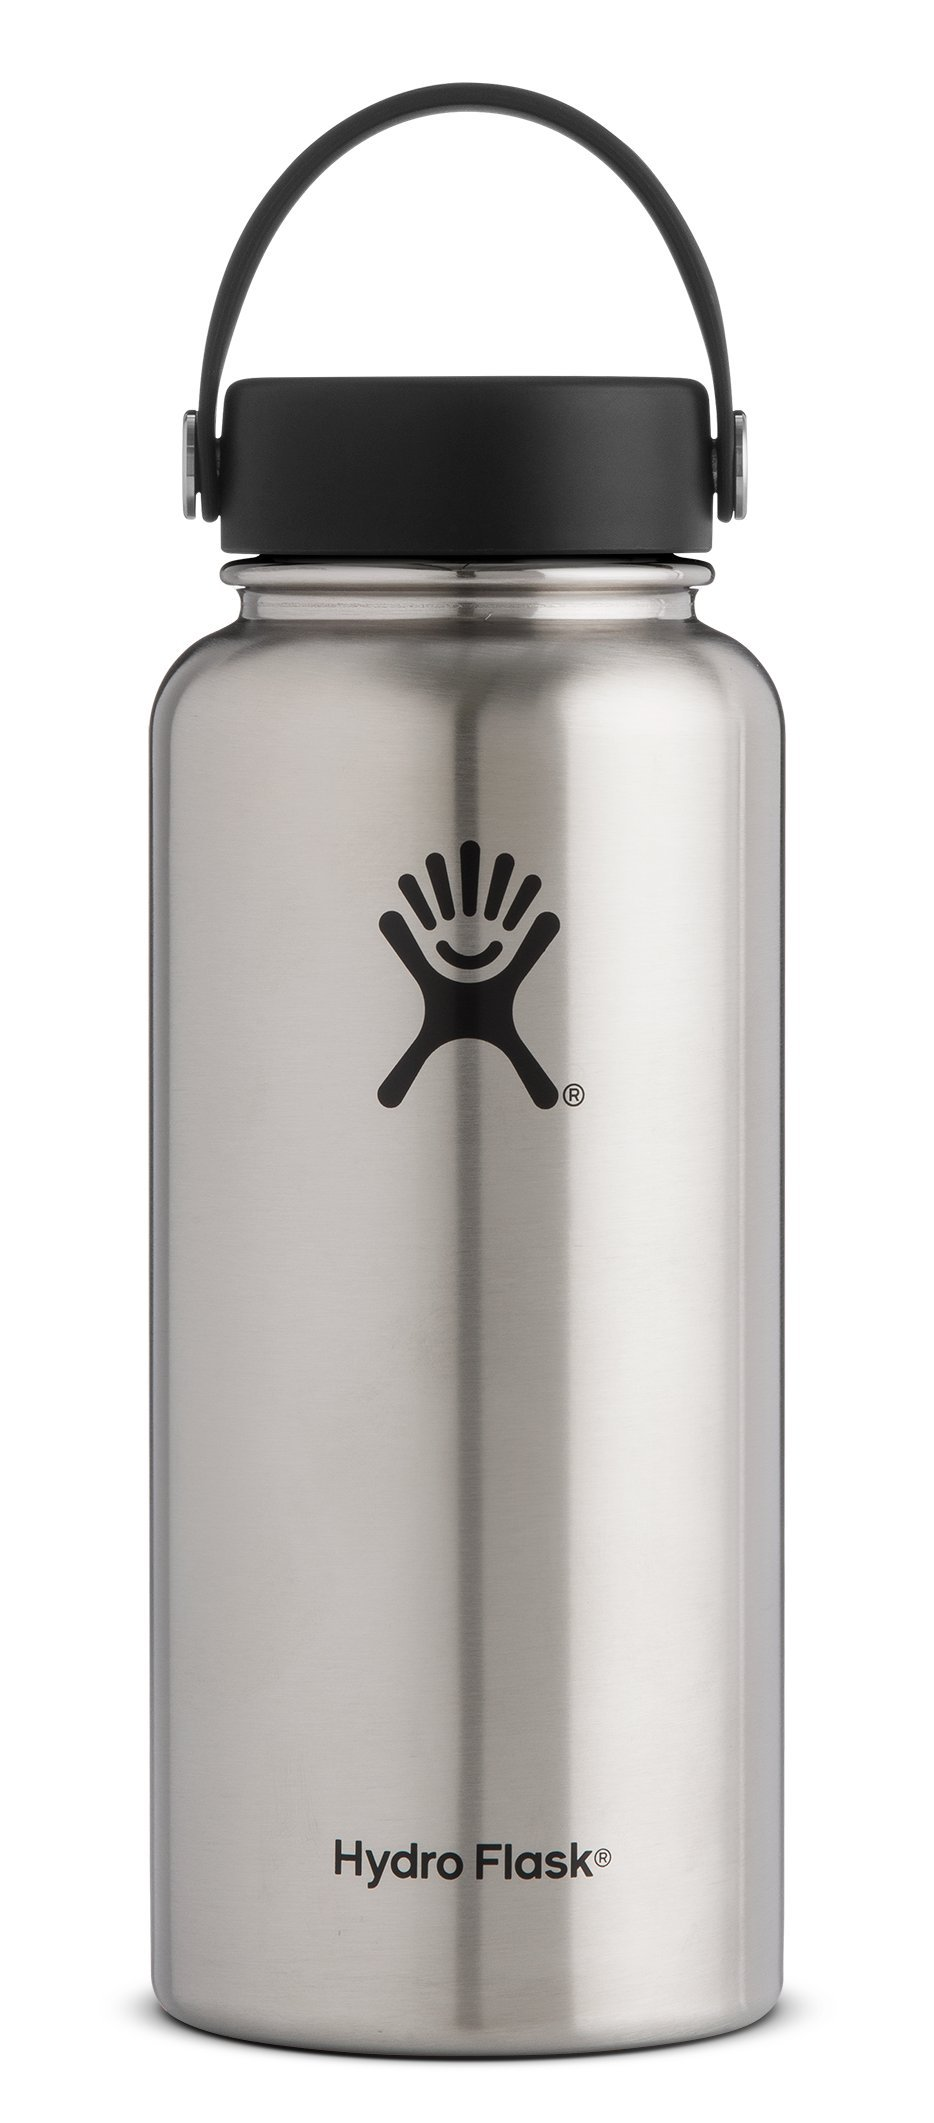 Hydro Flask 40 oz Double Wall Vacuum Insulated Stainless Steel Leak Proof Sports Water Bottle, Wide Mouth with BPA Free Flex Cap, Stainless